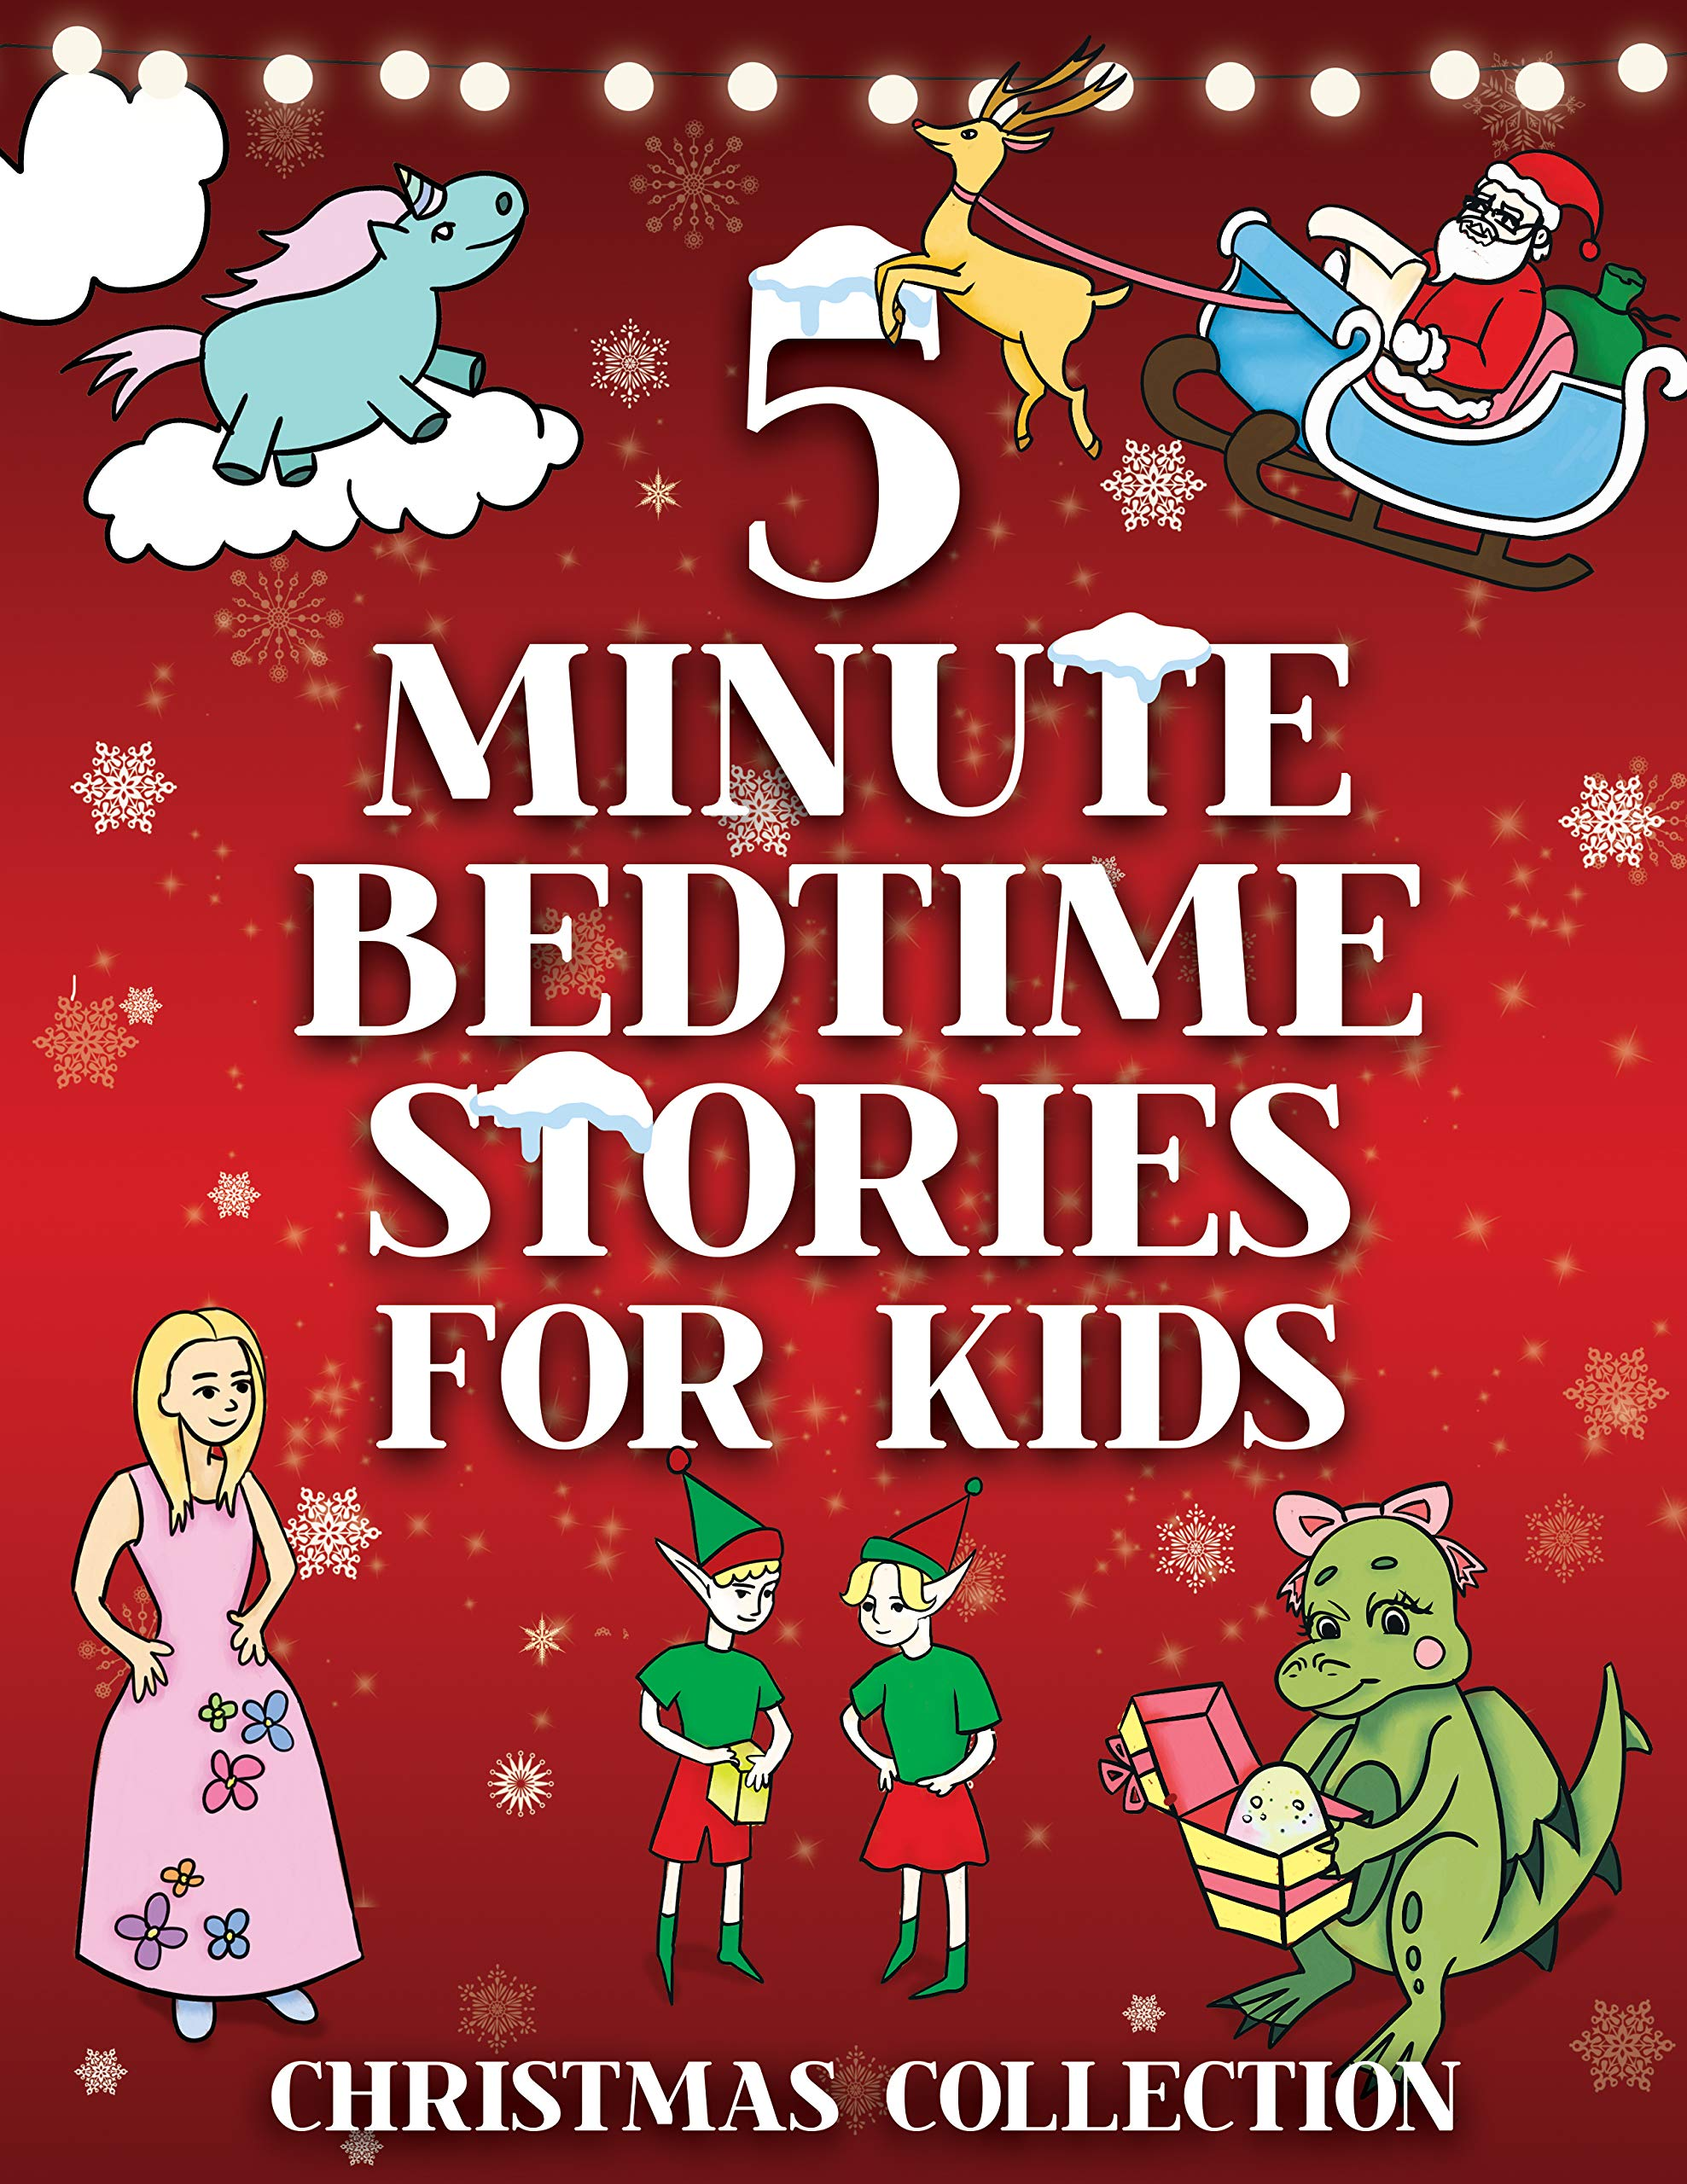 5 Minute Bedtime Stories for Kids - Christmas Collection: Fun Story Book with Santa, Elves, Princesses, Dragons, Unicorns & More for Young Children Boys and Girls